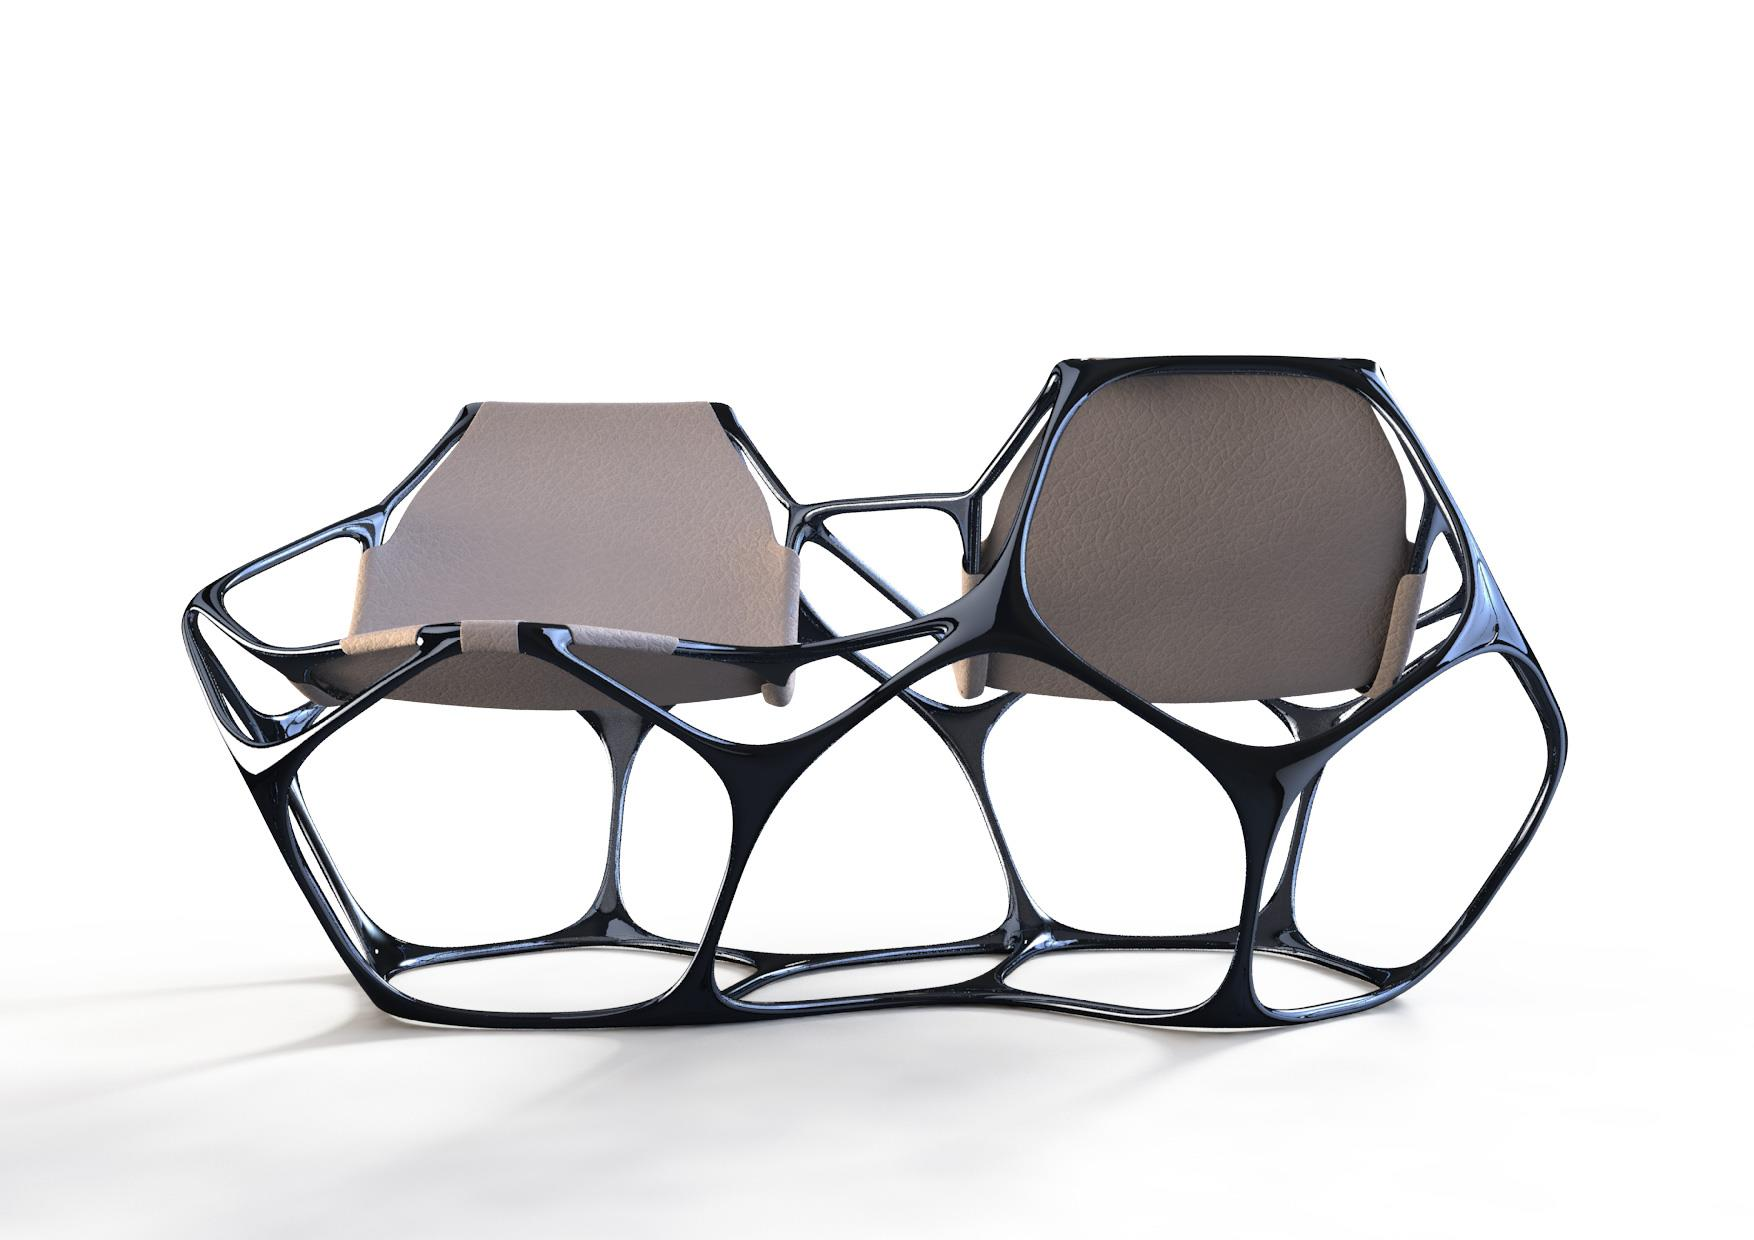 More furniture 3D printing by Peter Donders